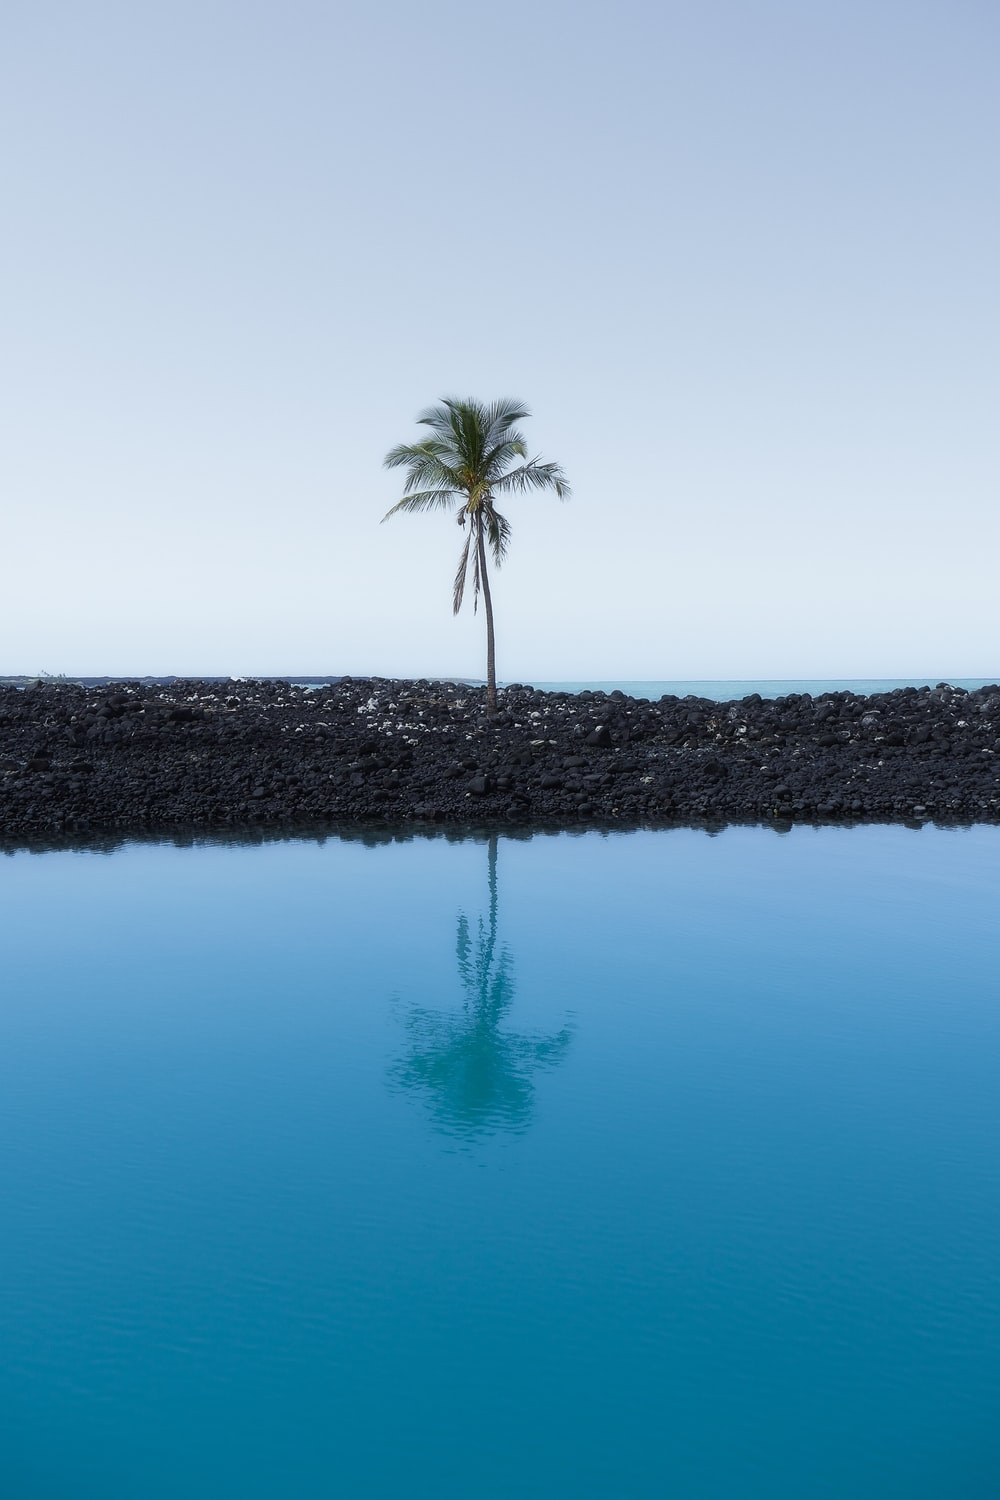 palm tree at the shore during day